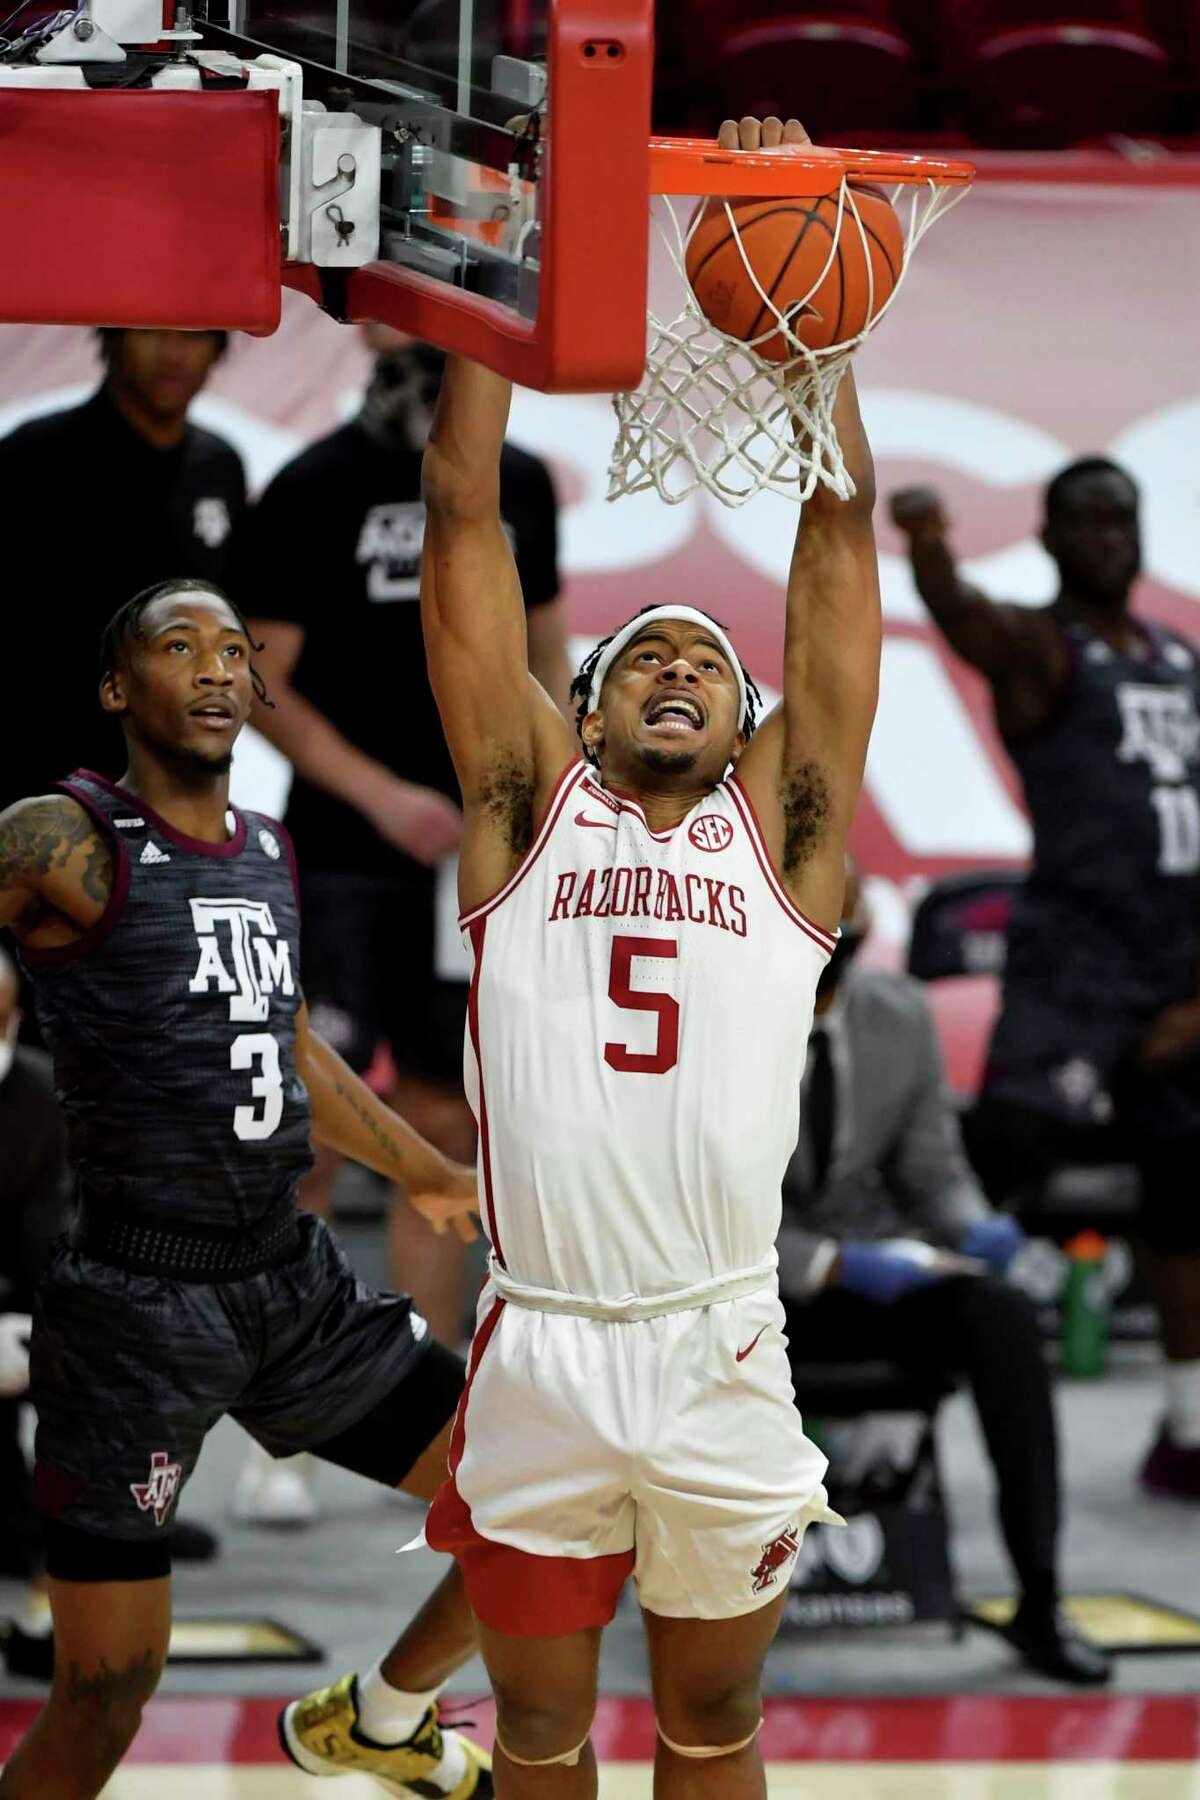 Arkansas guard Moses Moody (5) dunks the ball in front of Texas A&M defender Quenton Jackson (3) during the first half of an NCAA college basketball game in Fayetteville, Ark., Saturday, March 6, 2021. (AP Photo/Michael Woods)